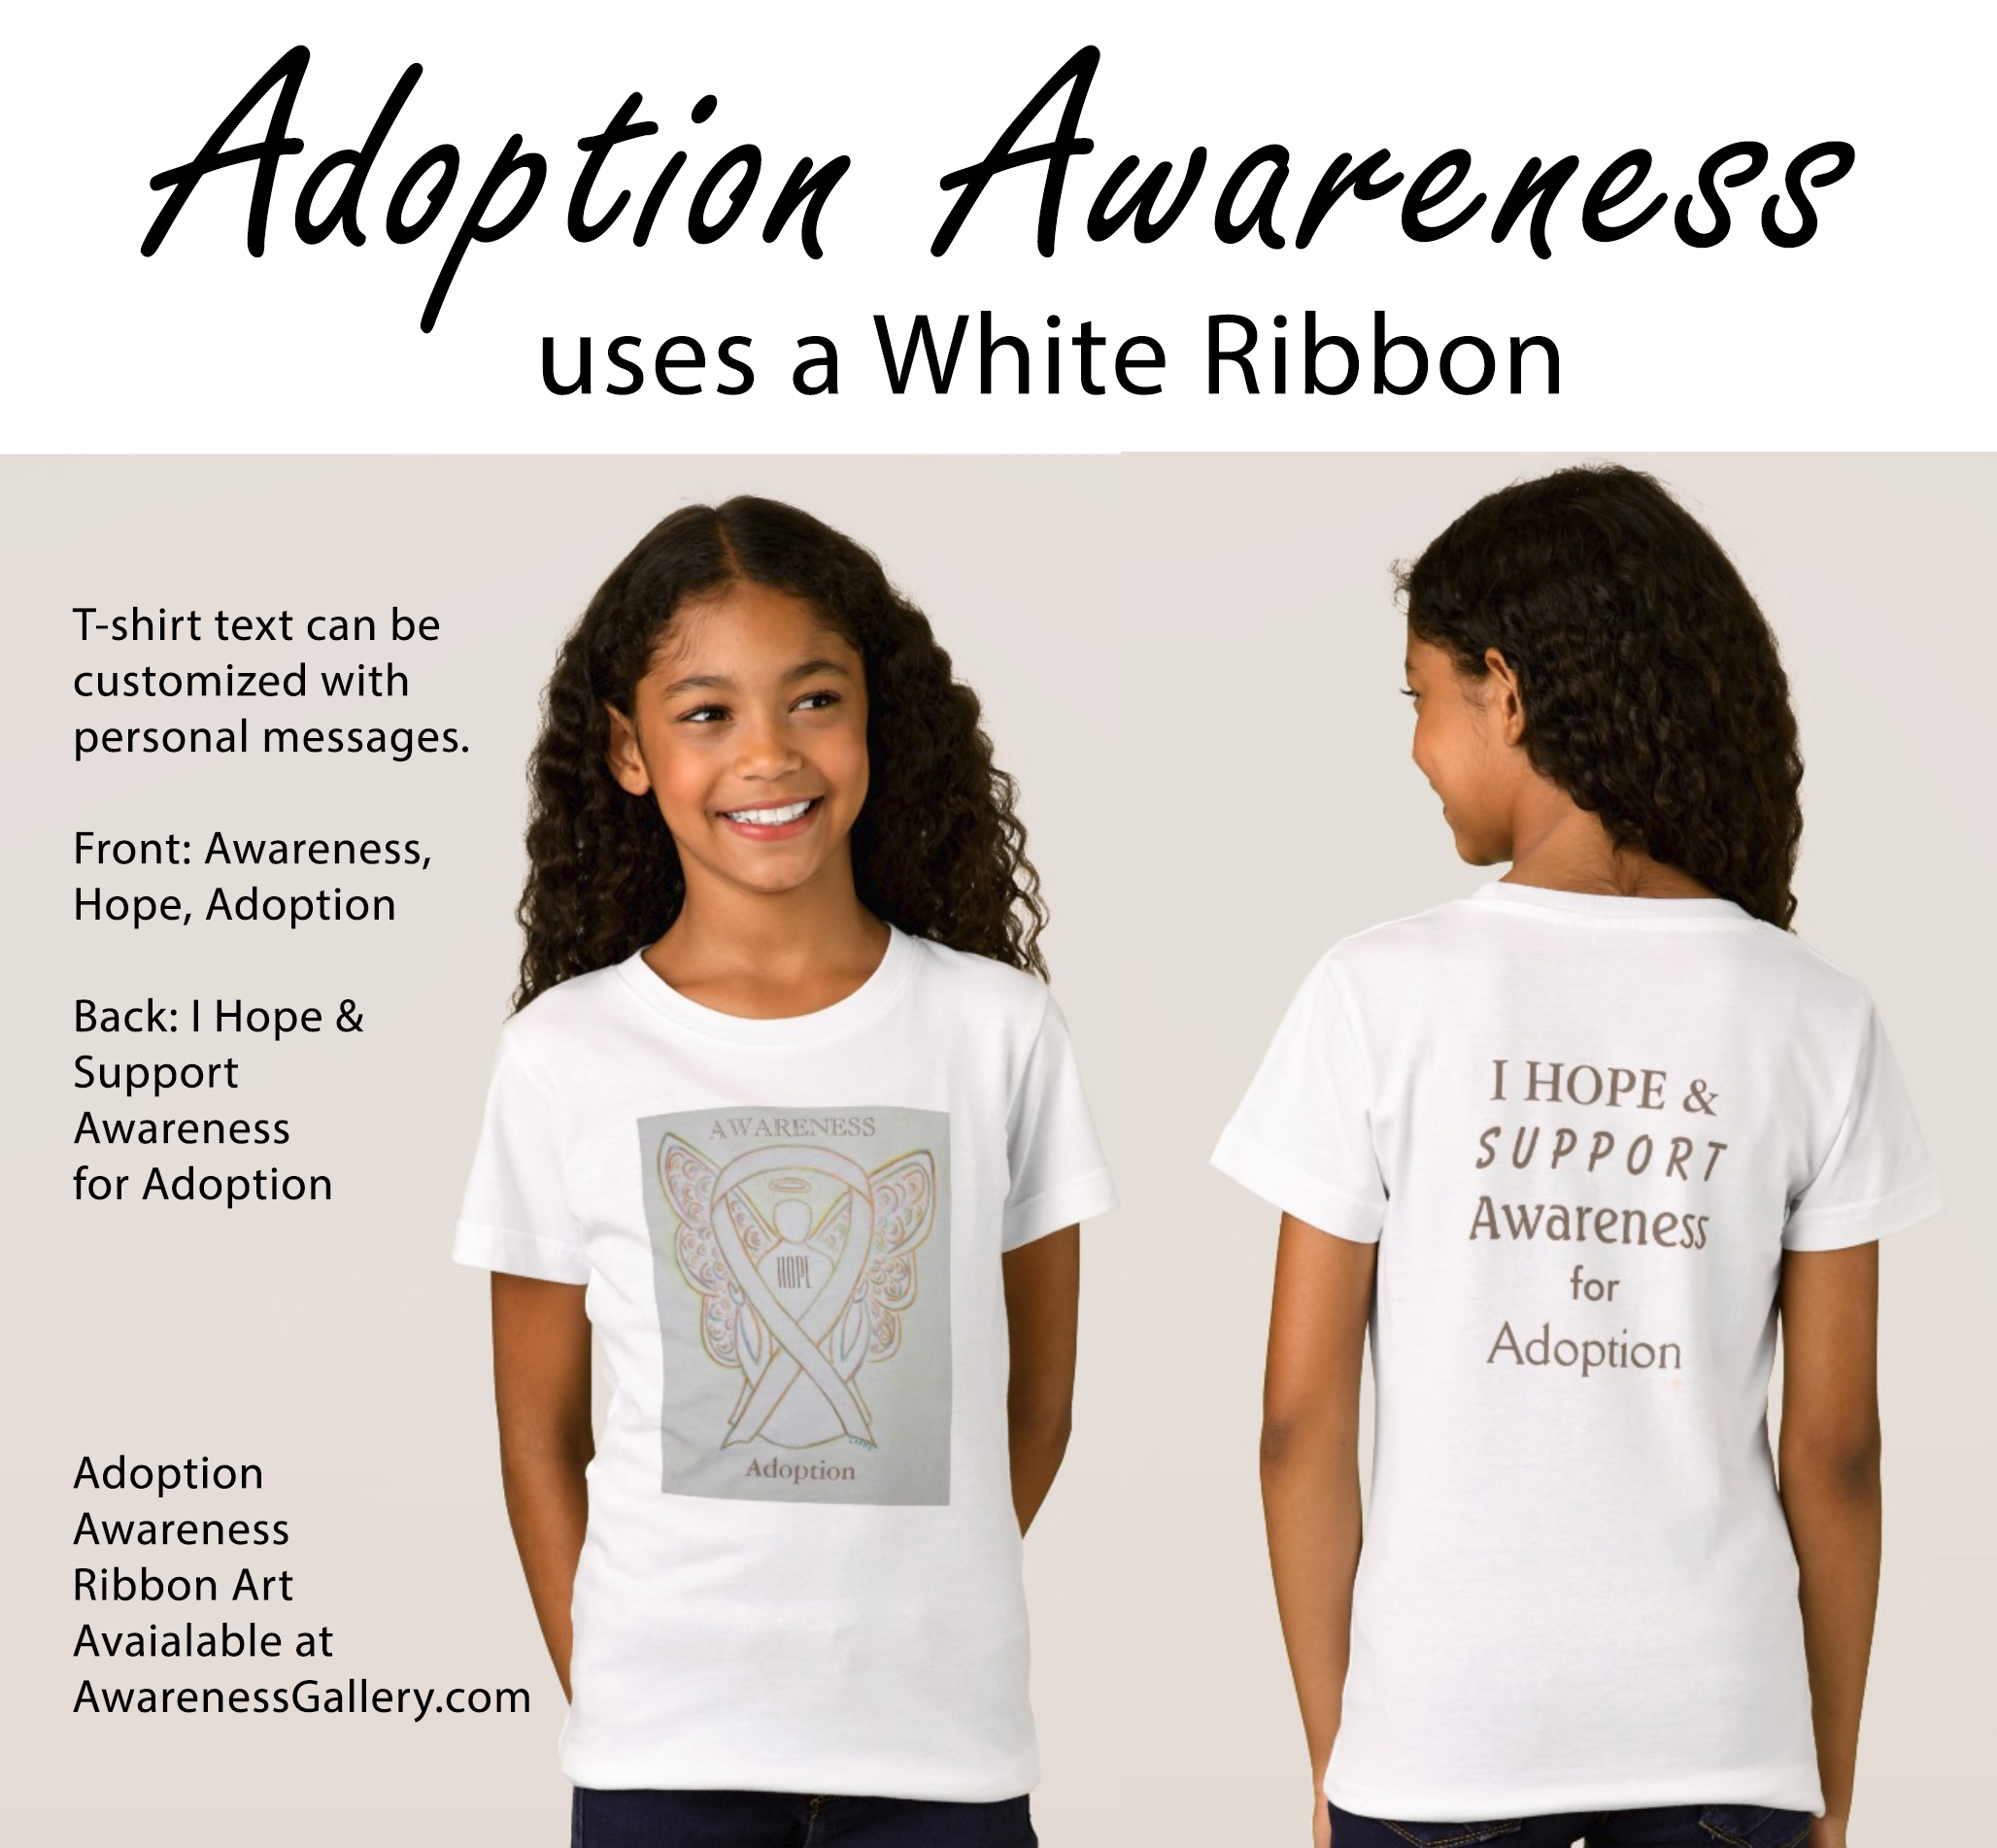 Adoption Awareness White Ribbon - Make Custom Adoption Awareness Clothing & Gifts!